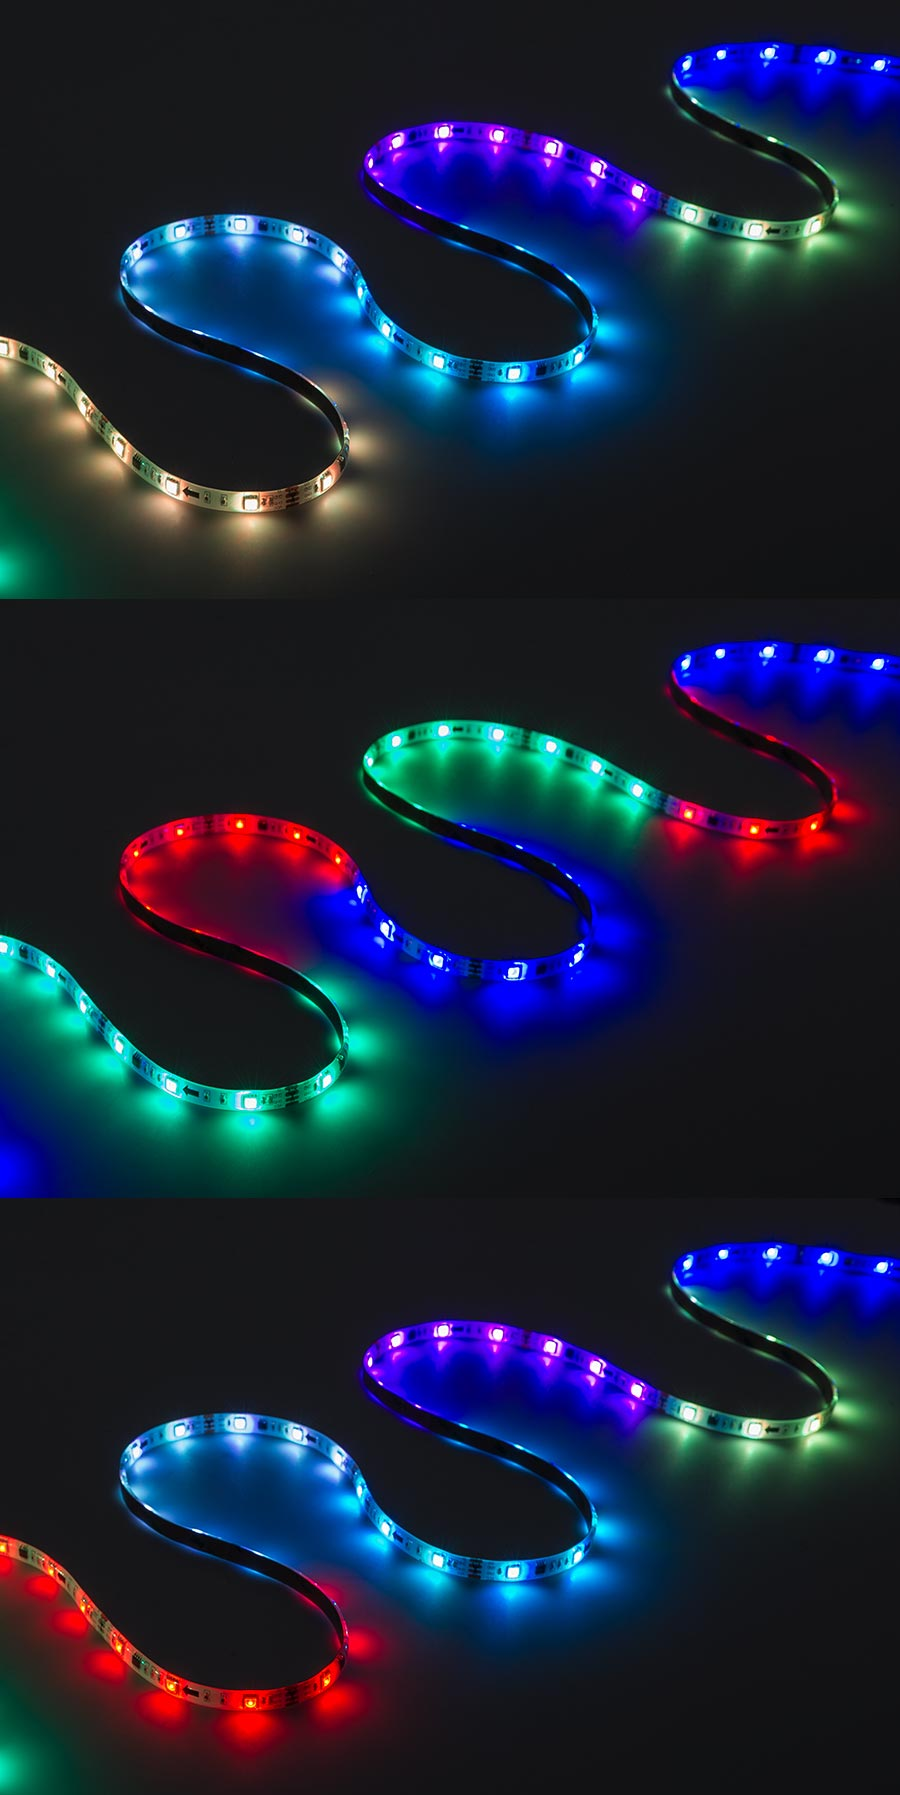 Outdoor rgb led strip lights color chasing 12v led tape light waterproof color chasing led light strips with multi color leds 1640ft 5m waterproof color chasing led light strips with multi color leds 1640ft aloadofball